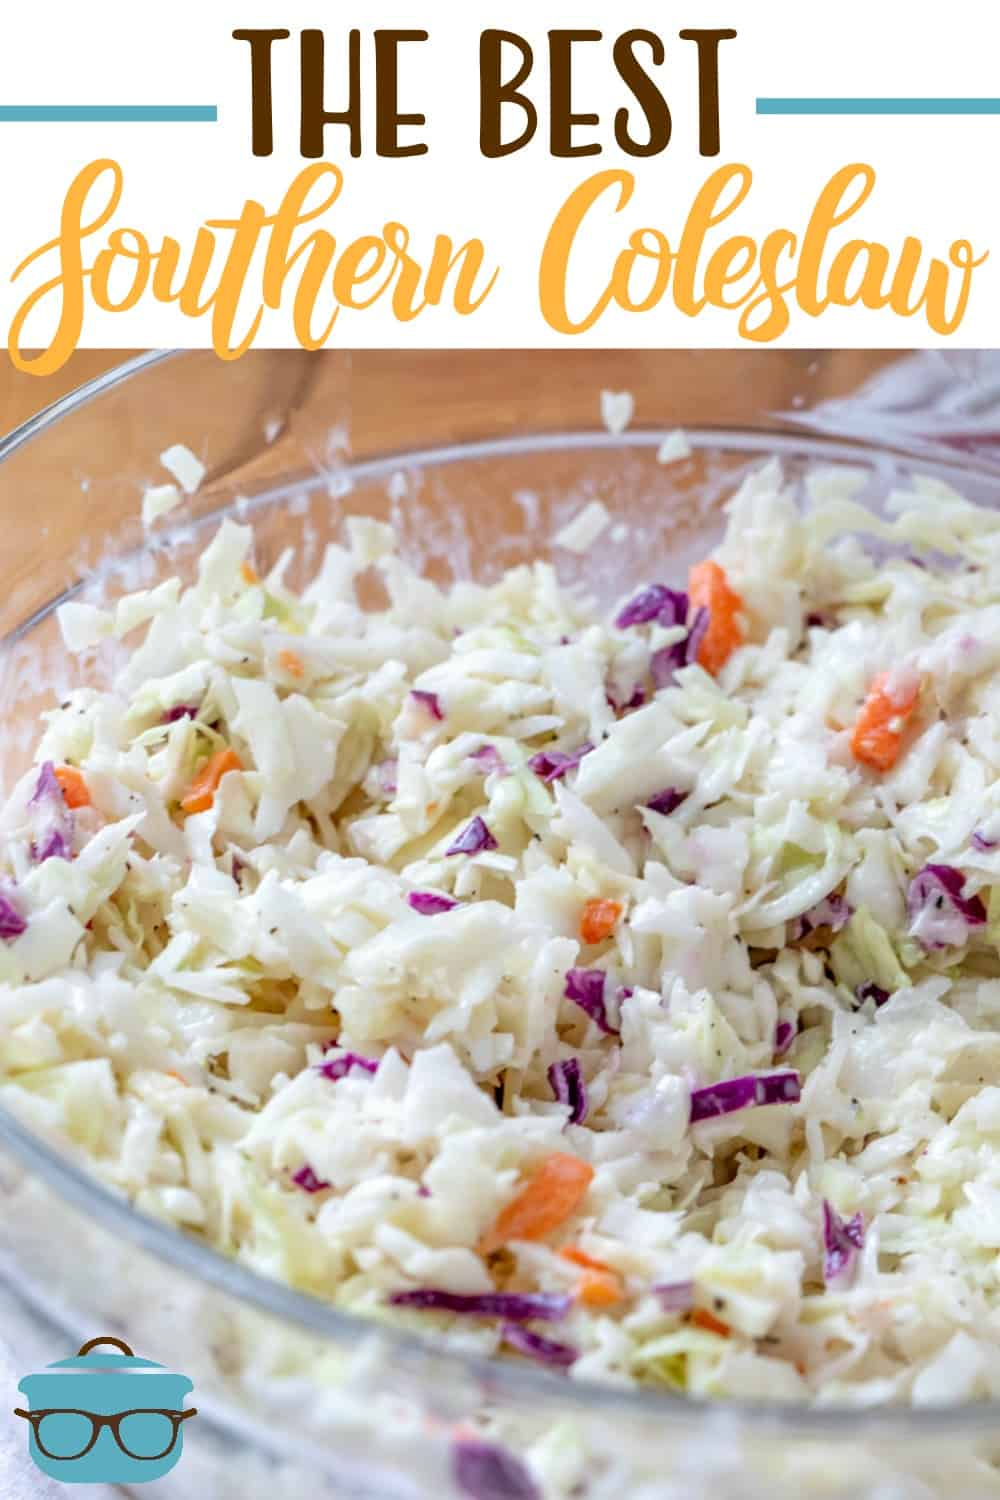 The Best Southern Coleslaw Video The Country Cook